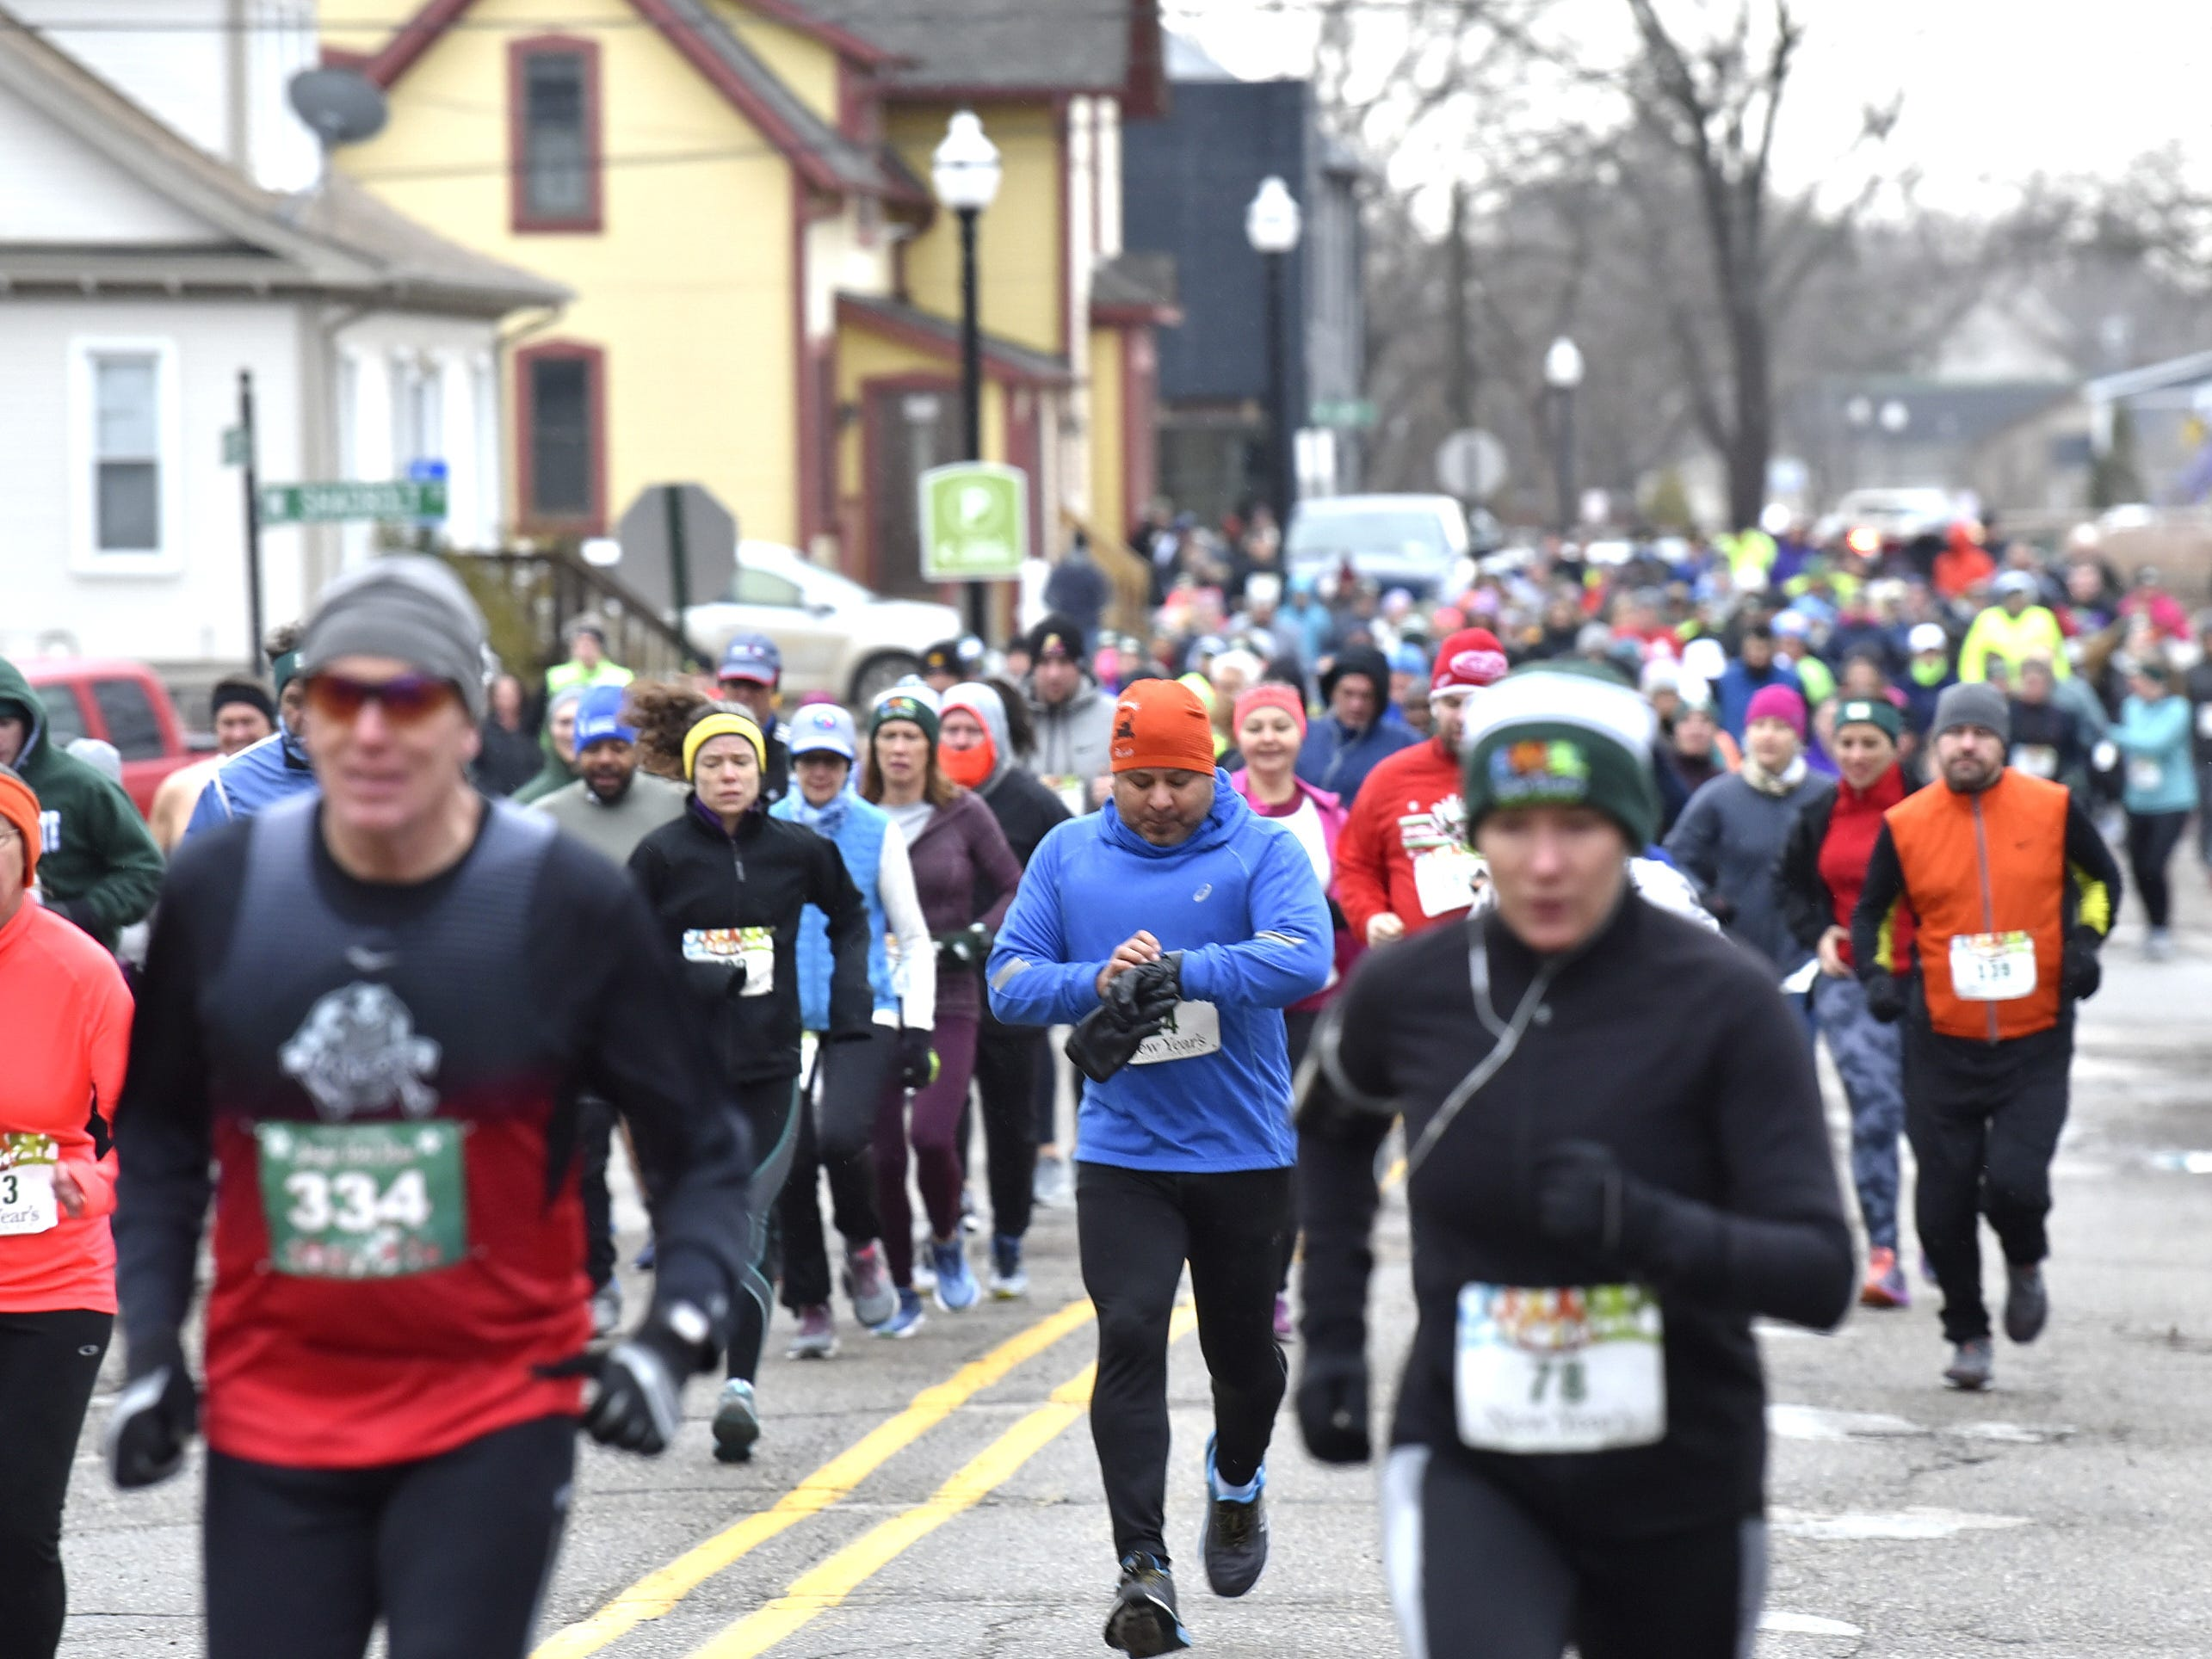 Art Ibarra (24), center, starts his watch at the beginning of the run. He finishes in 7th place for males ages 50-59 and 44th overall.